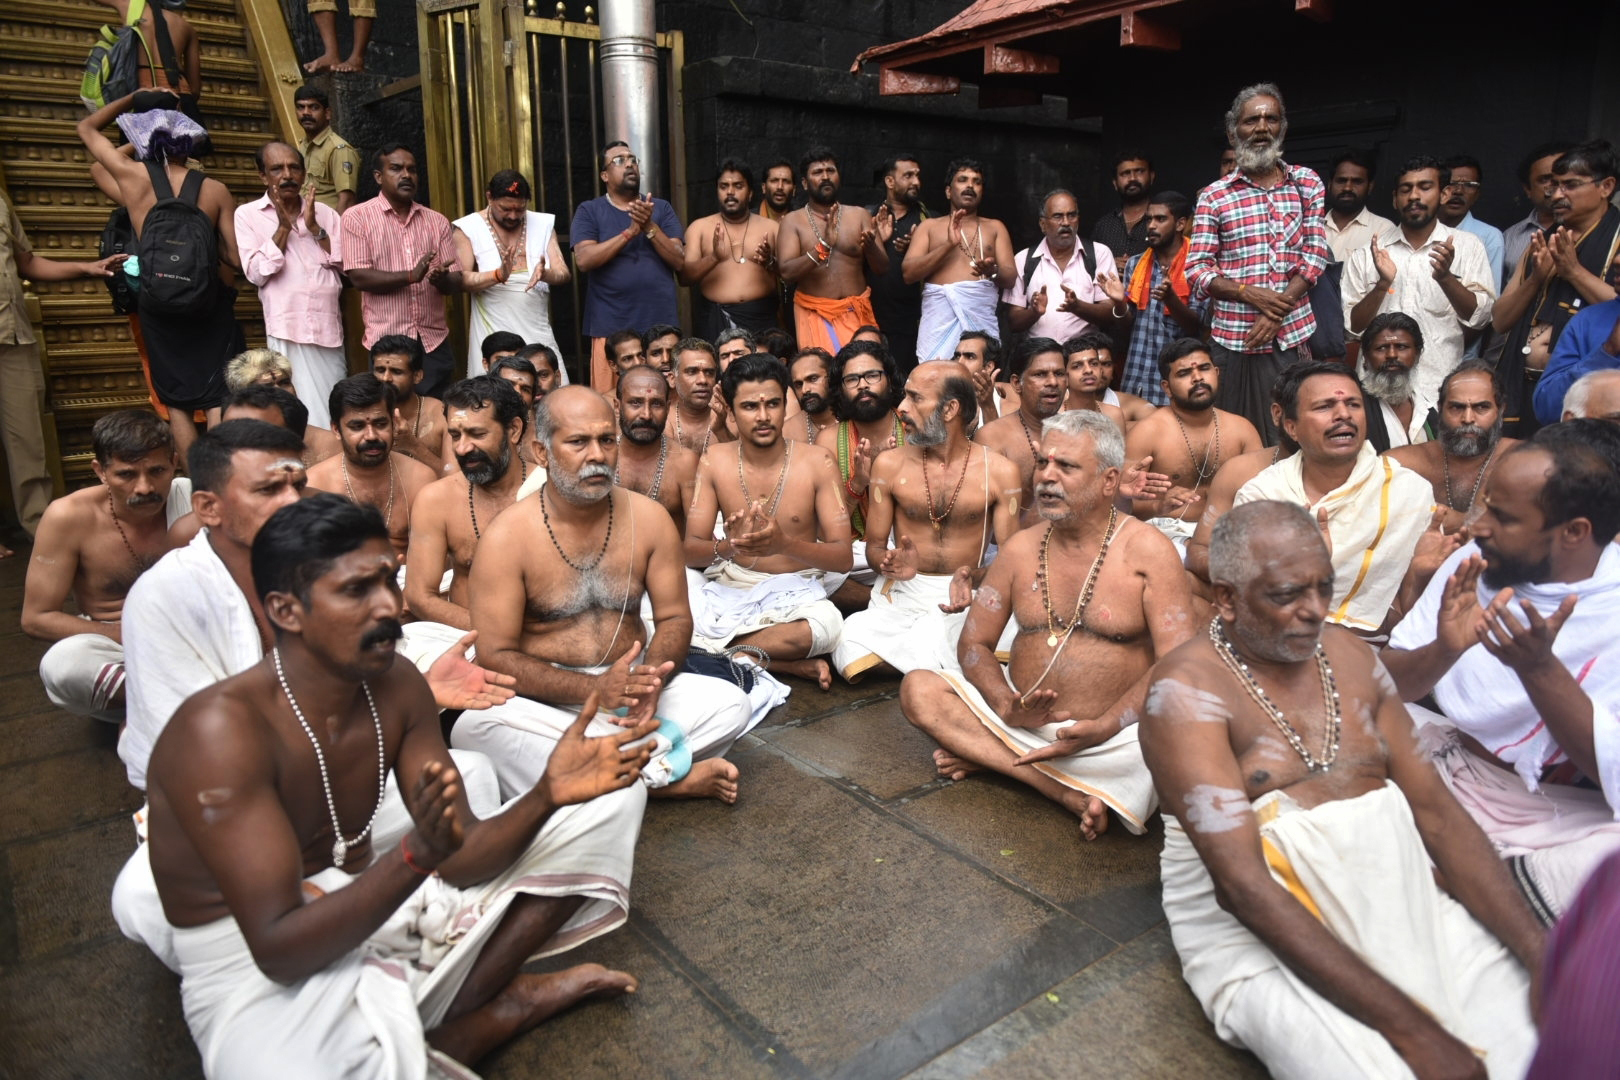 Hindu priests and temple staff sit on a protest against a ruling from India's top court to let women of menstruating age entering Sabarimala temple, one of the world's largest Hindu pilgrimage sites, in the southern Indian state of Kerala, Friday, Oc...